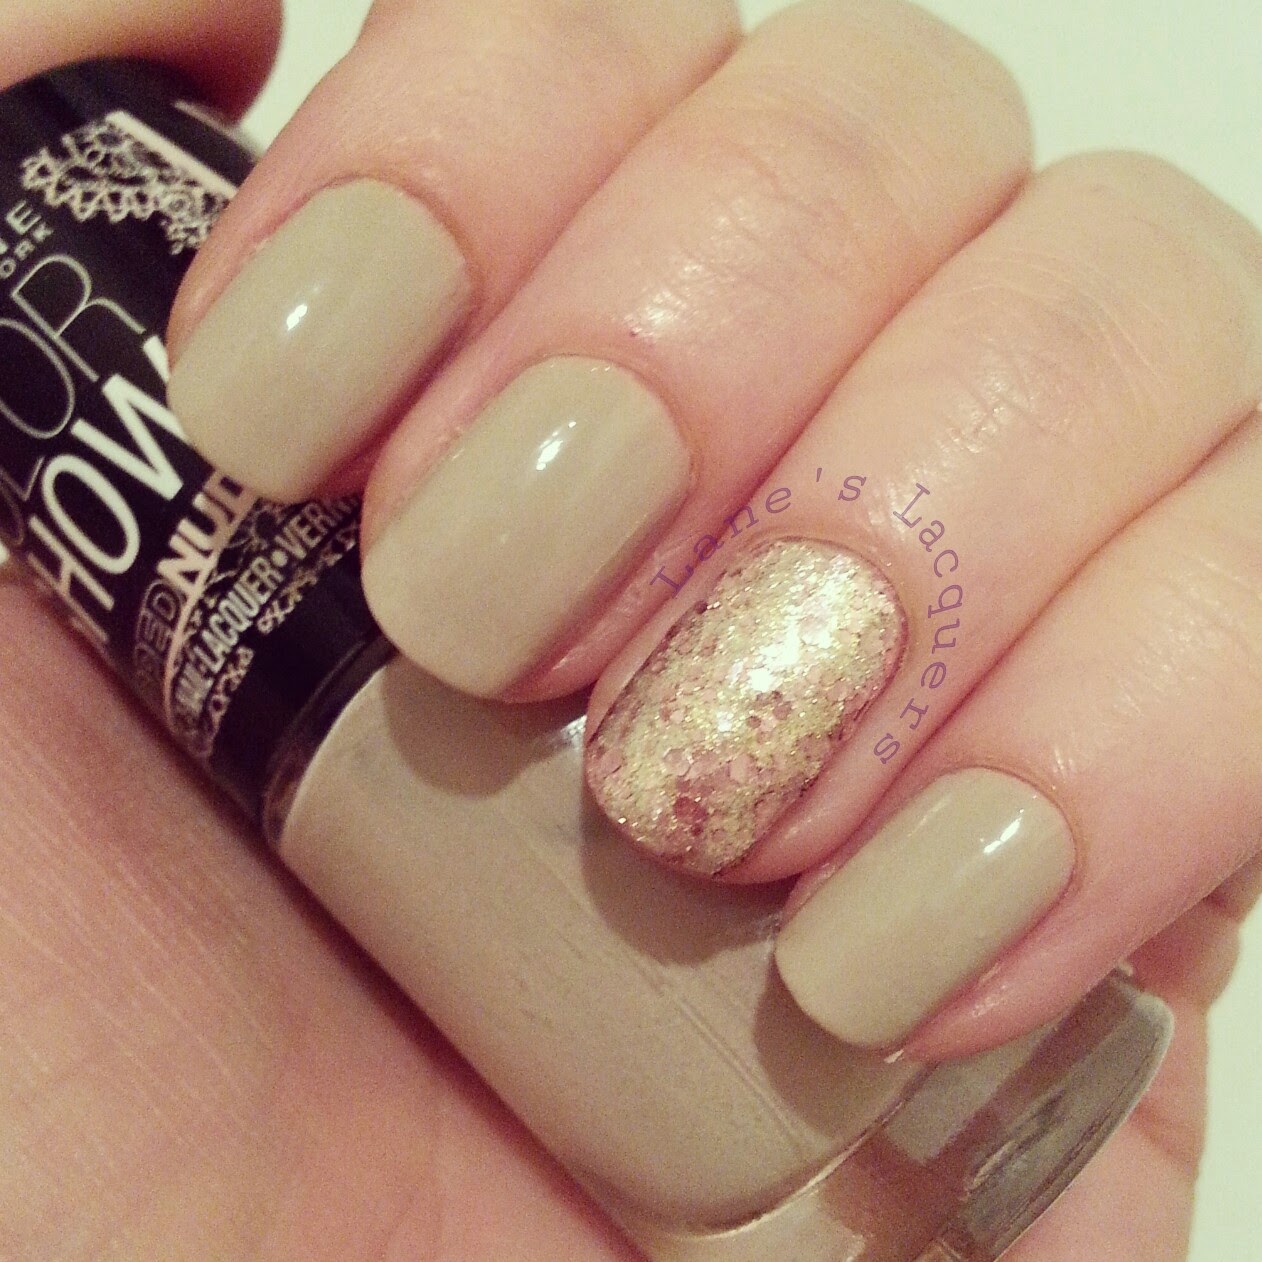 maybelline-nude-and-brocades-manicure